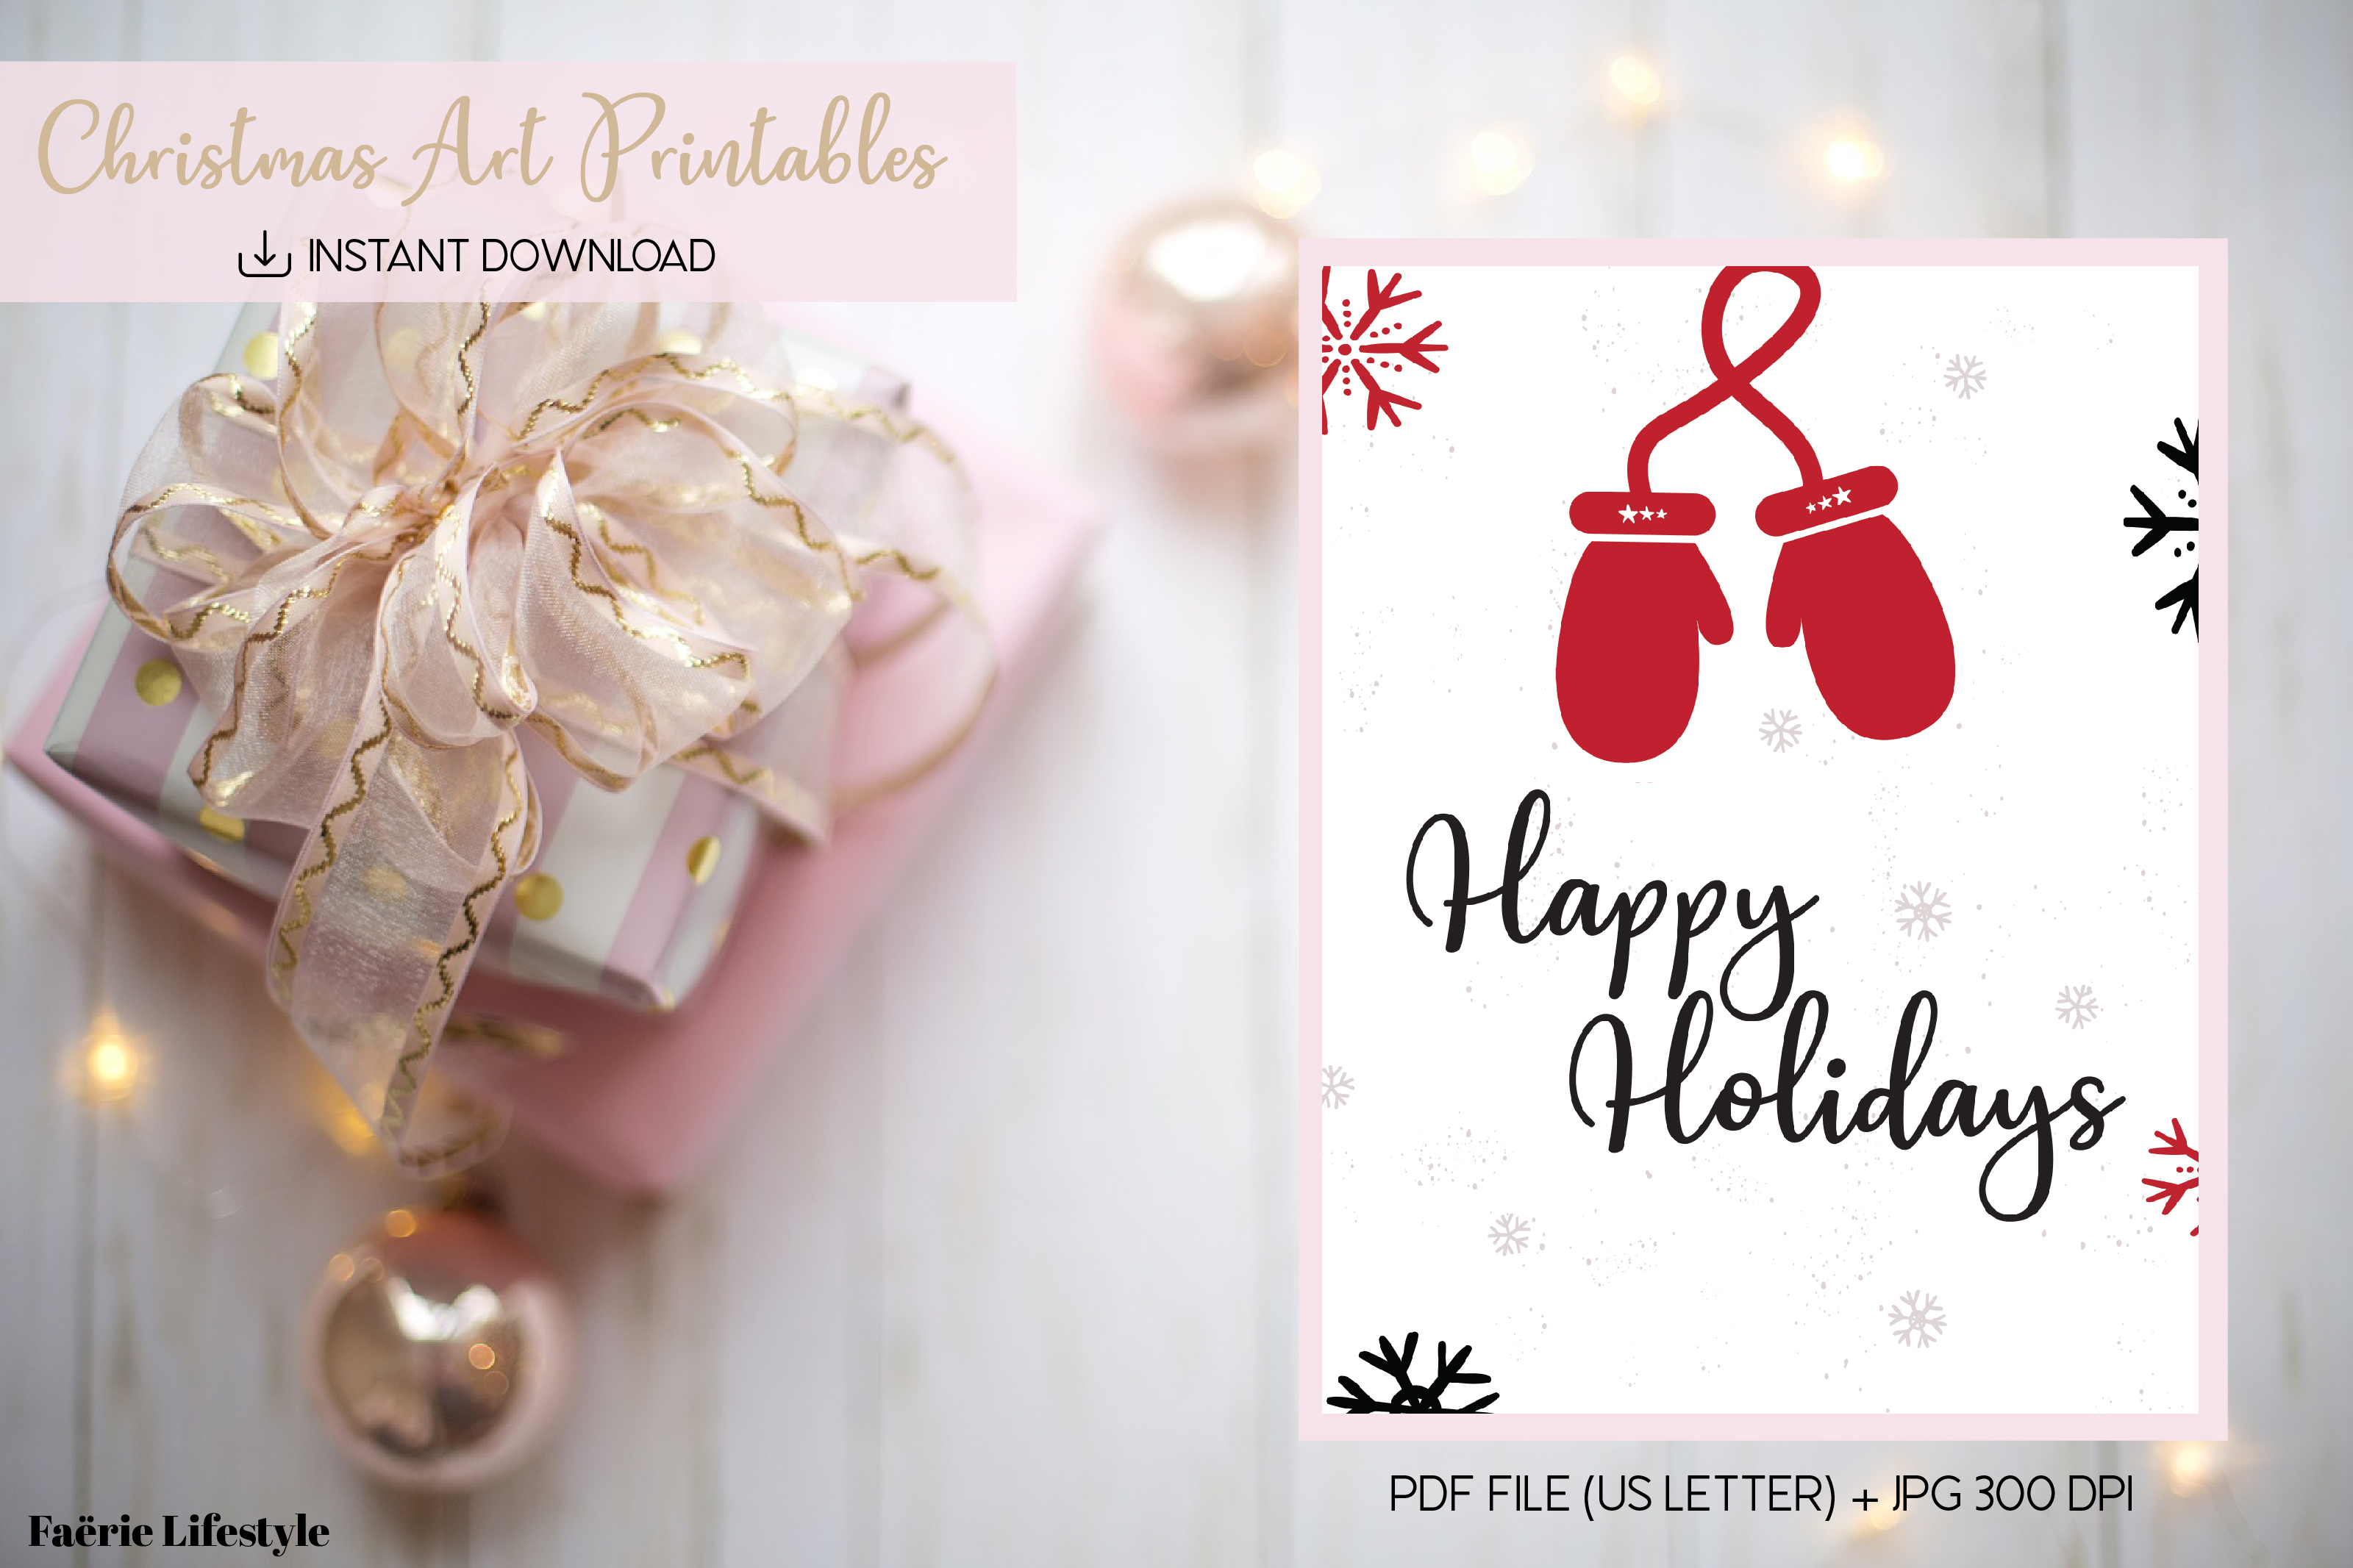 Download Free Happy Holidays Graphic By Faerie Lifestyle Creative Fabrica for Cricut Explore, Silhouette and other cutting machines.